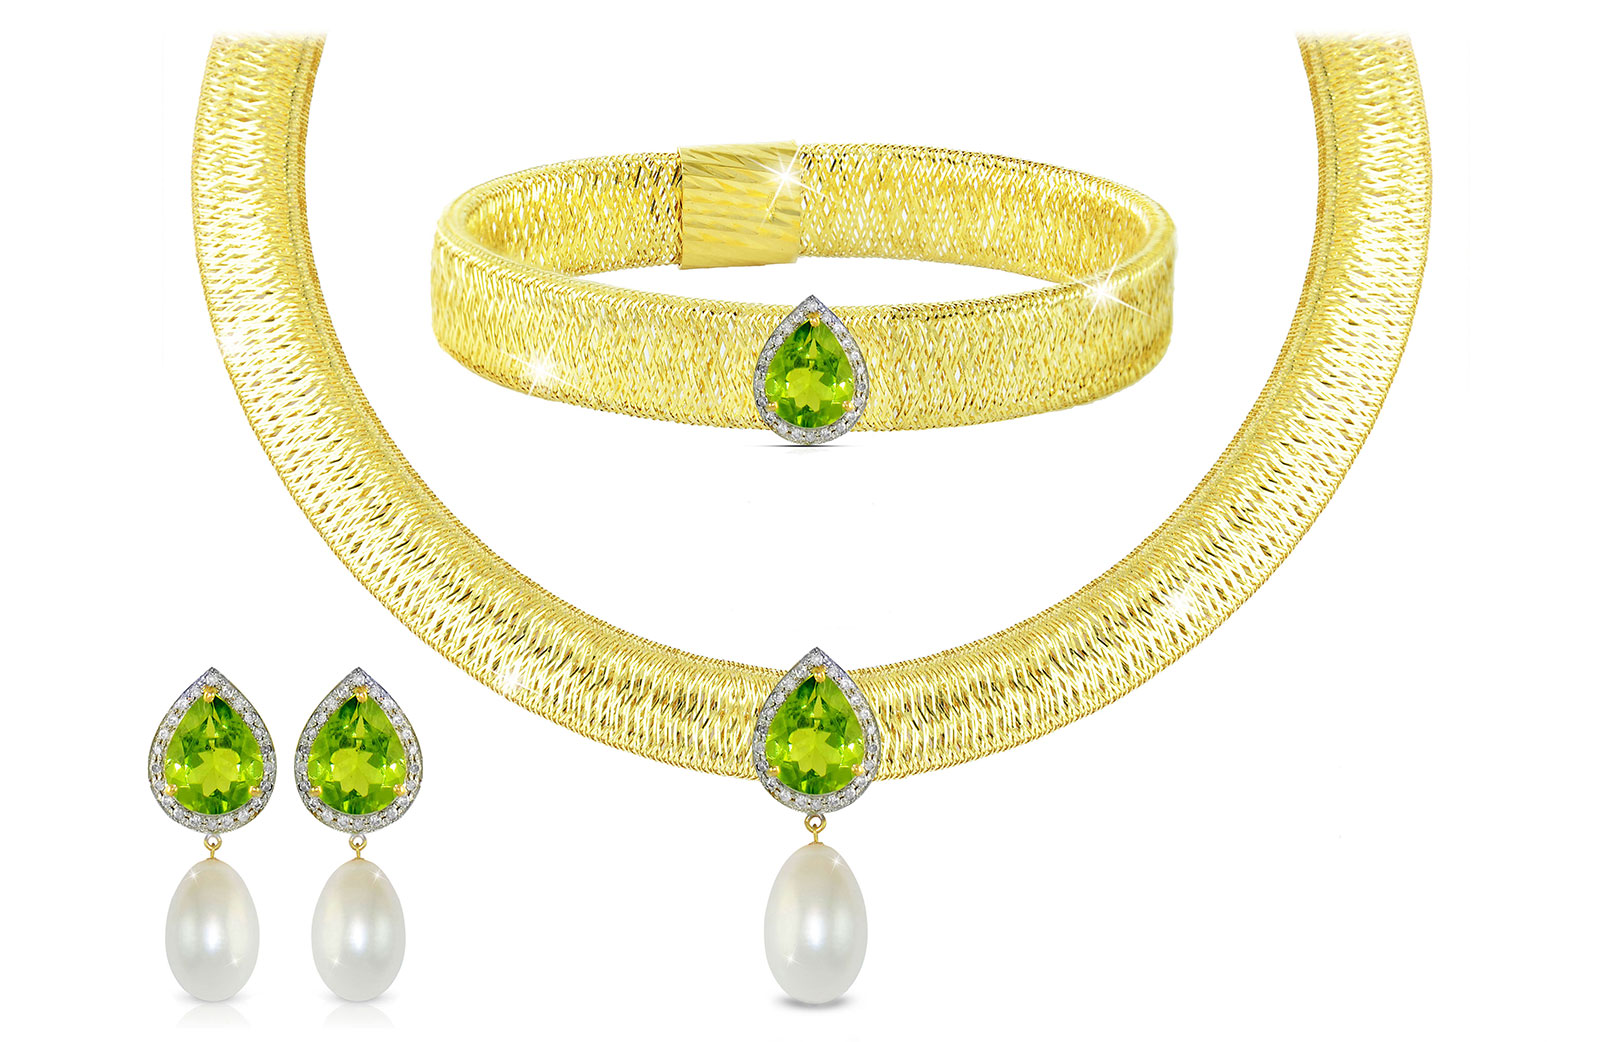 Vera Perla 18K Gold 0.48ct Diamonds, Peridot and 13mm White Pearl Jewelry Set - 3 pcs.